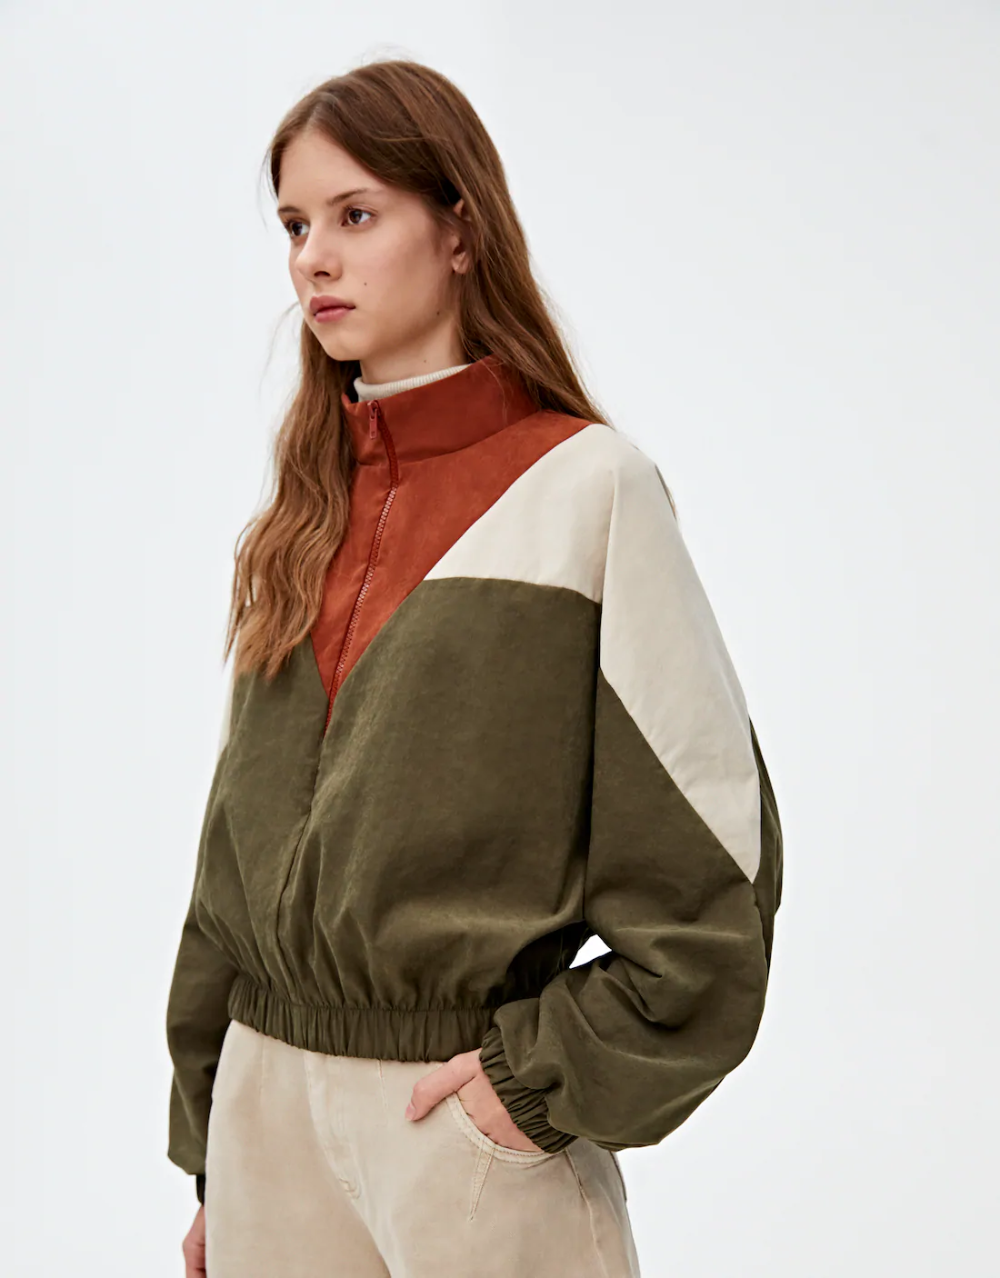 Check Out The Latest In Women S Blouses And Shirts Pull Bear быть женщиной куртка с капюшоном модные стили